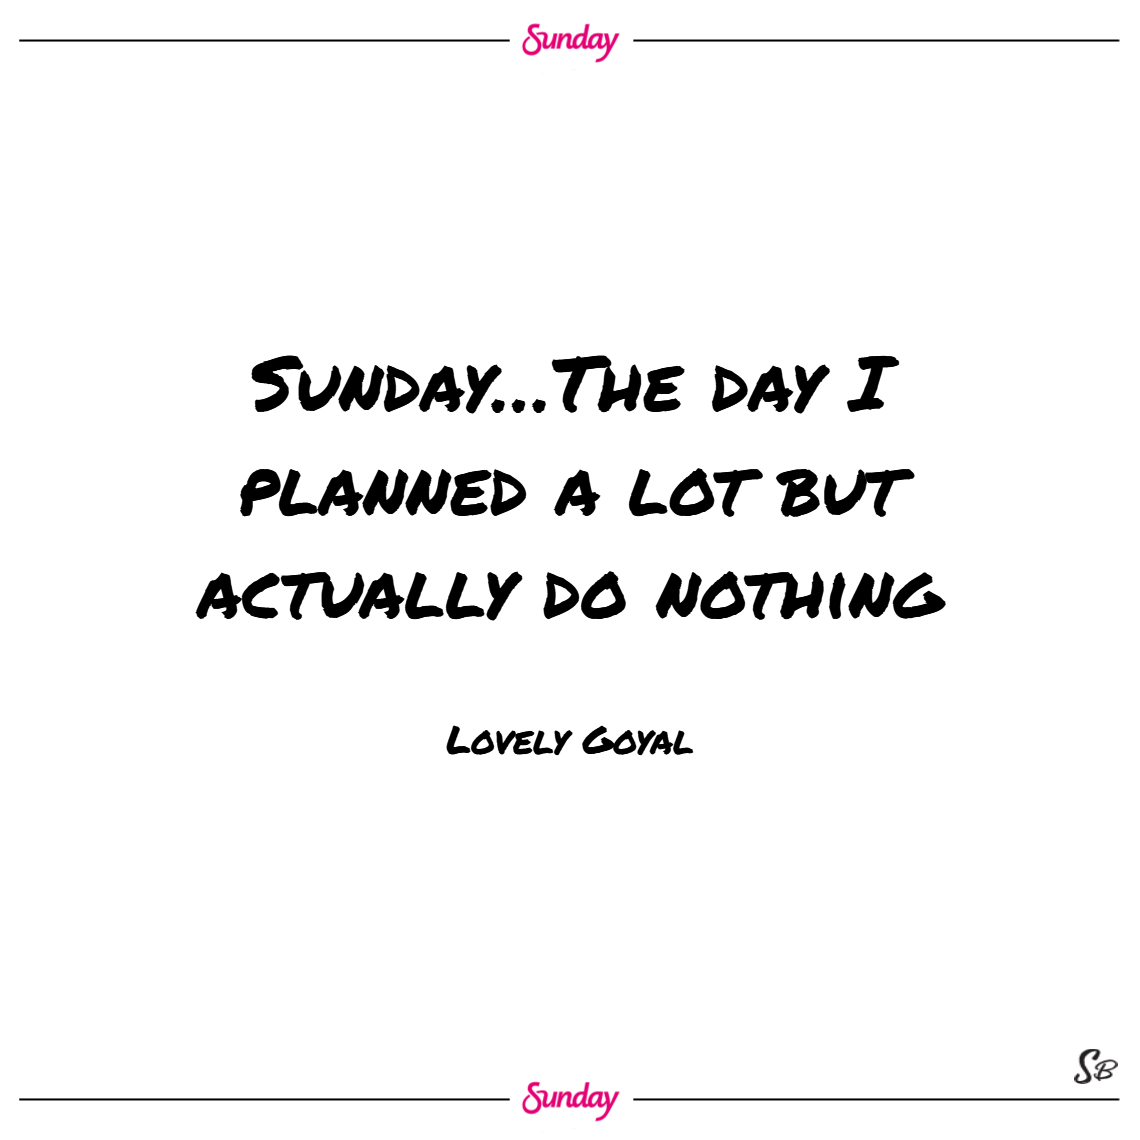 Sundayu2026the Day I Planned A Lot But Actually Do Nothing. U2013 Lovely Goyal